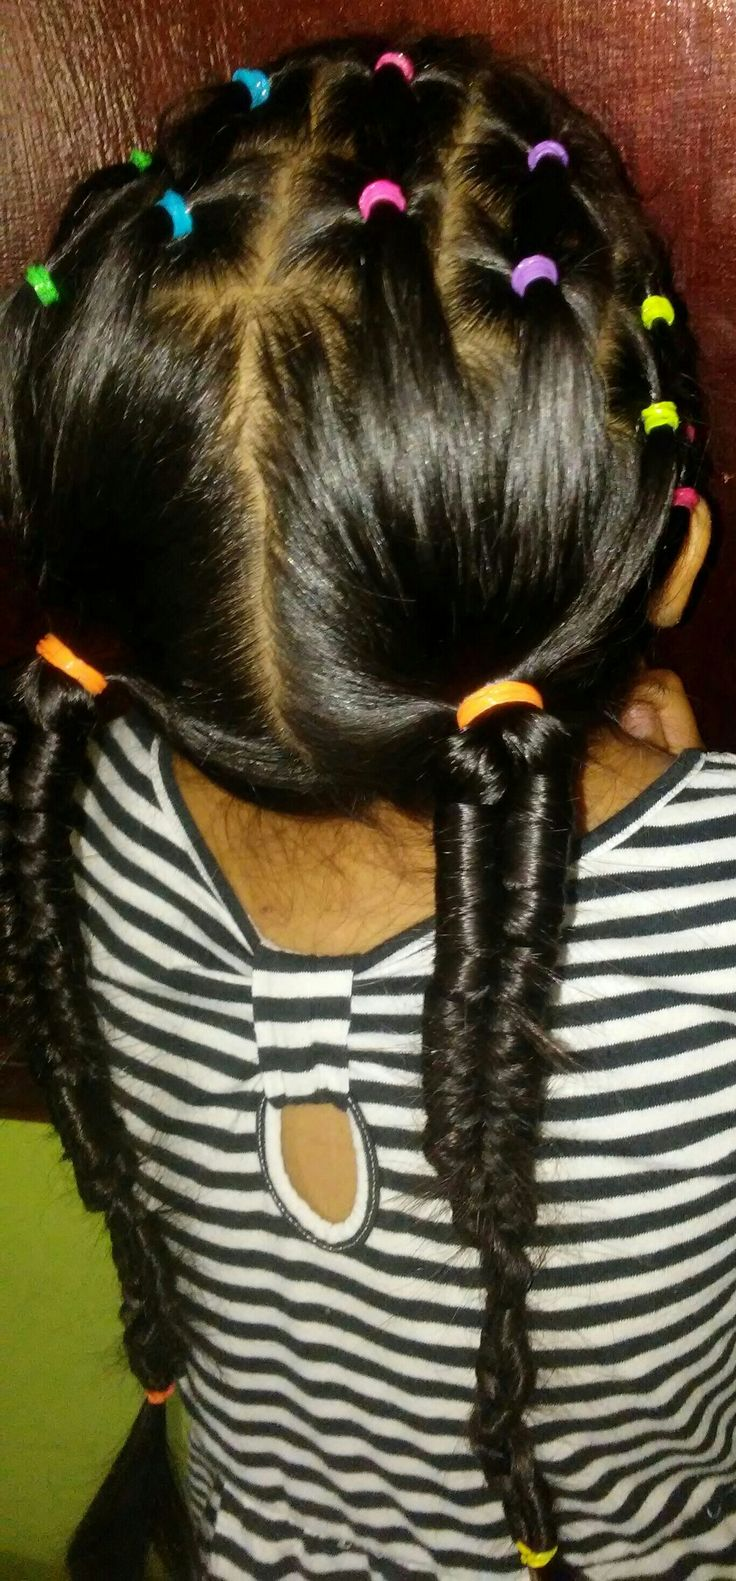 2 infinity braid ponytails   hairstyle added with some colorful elastics in the front. ❤